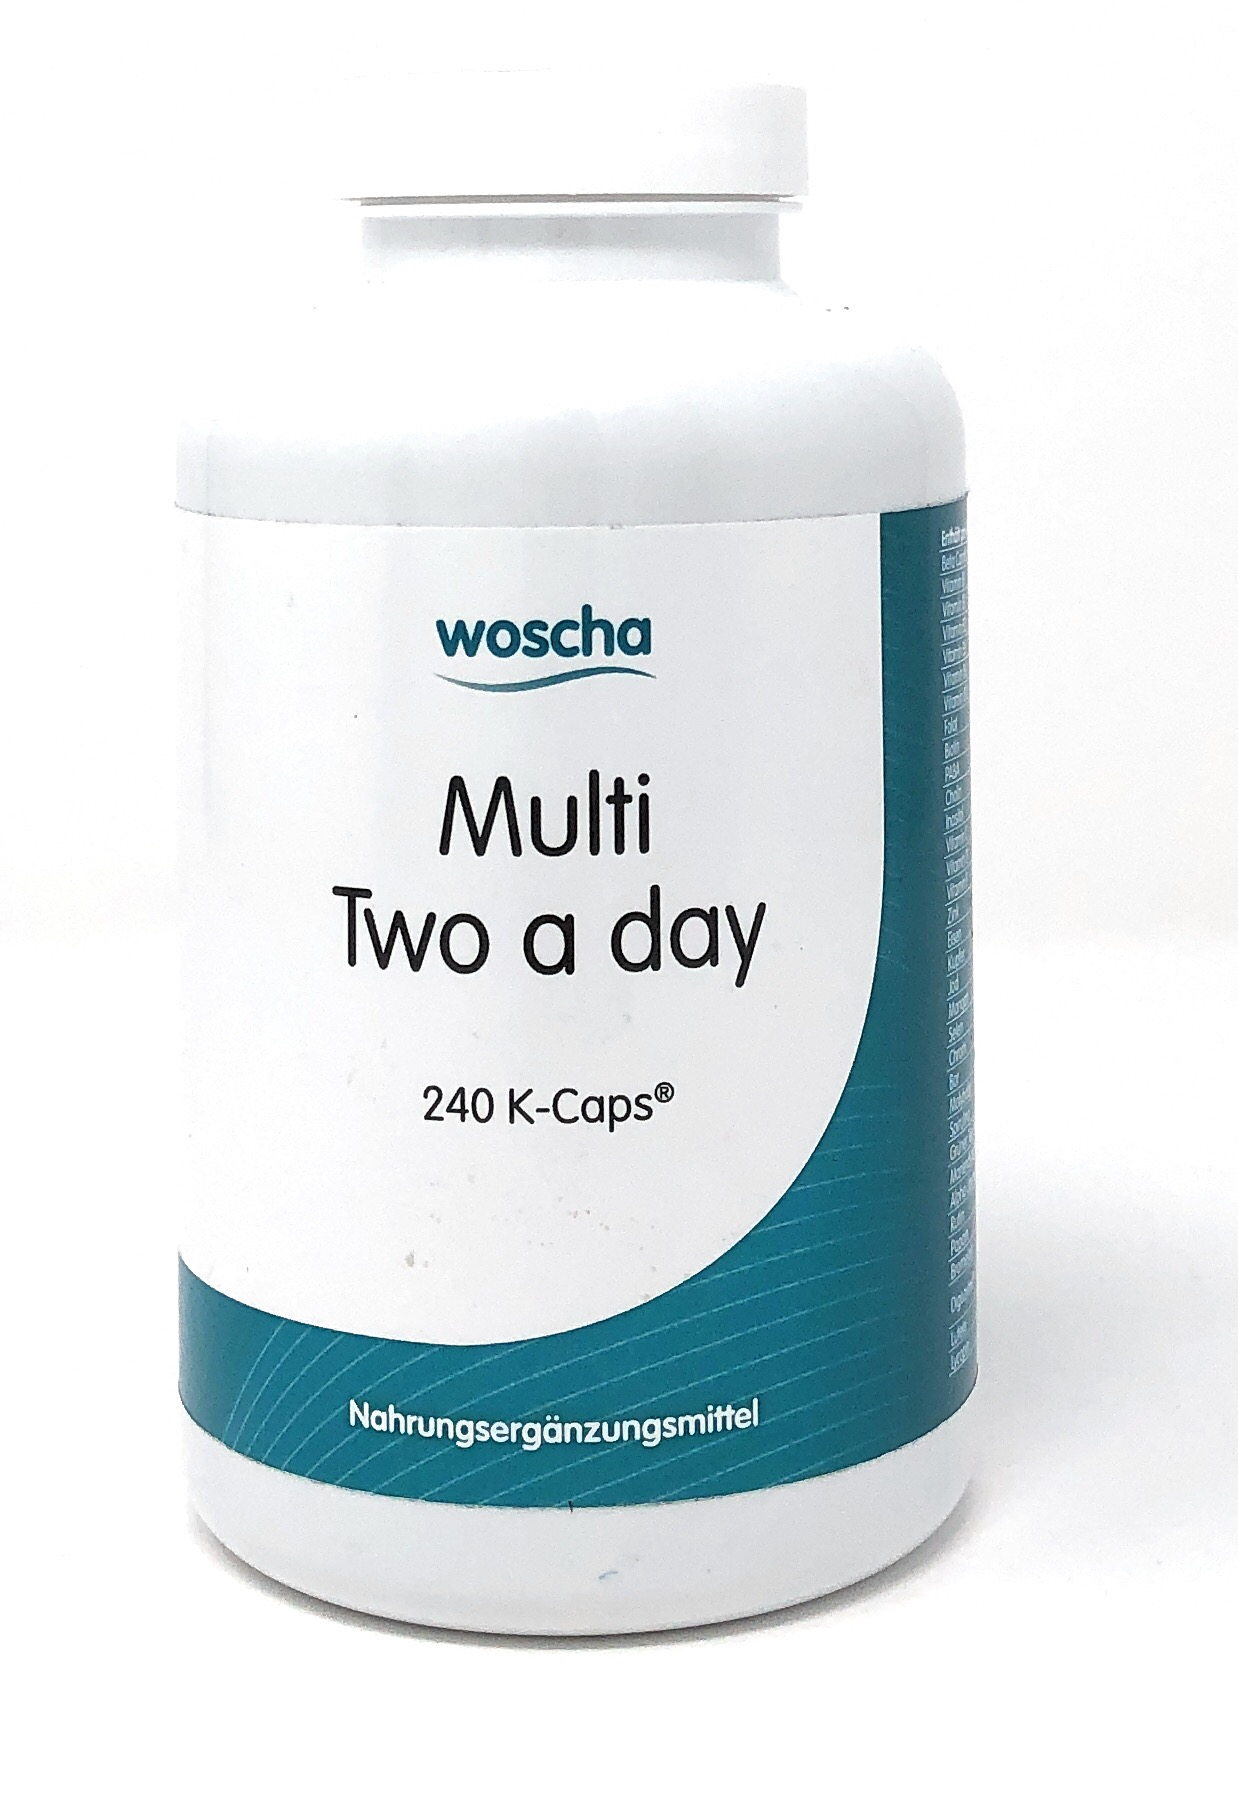 woscha Multi Two a Day 240 Embo-CAPS® (203g)